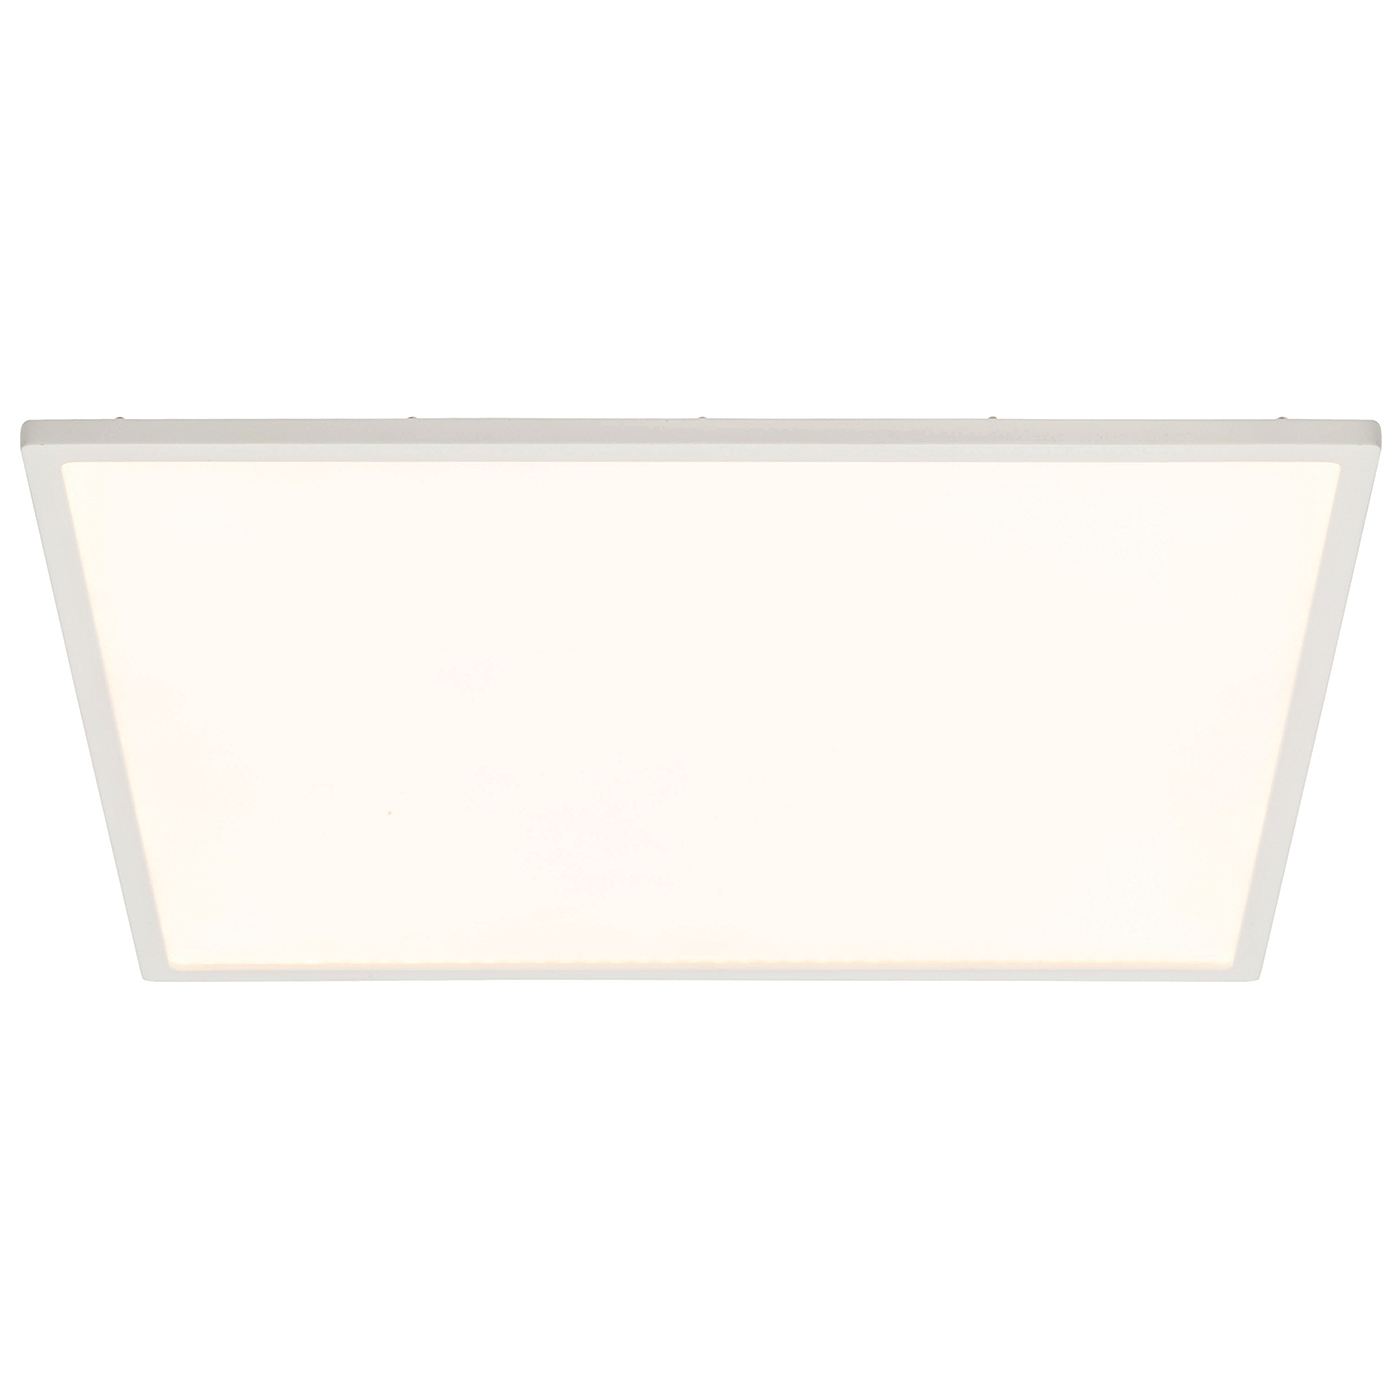 Endon Ceres 450mm square flush ceiling light 30W Gloss white & opal ps plastic Thumbnail 1